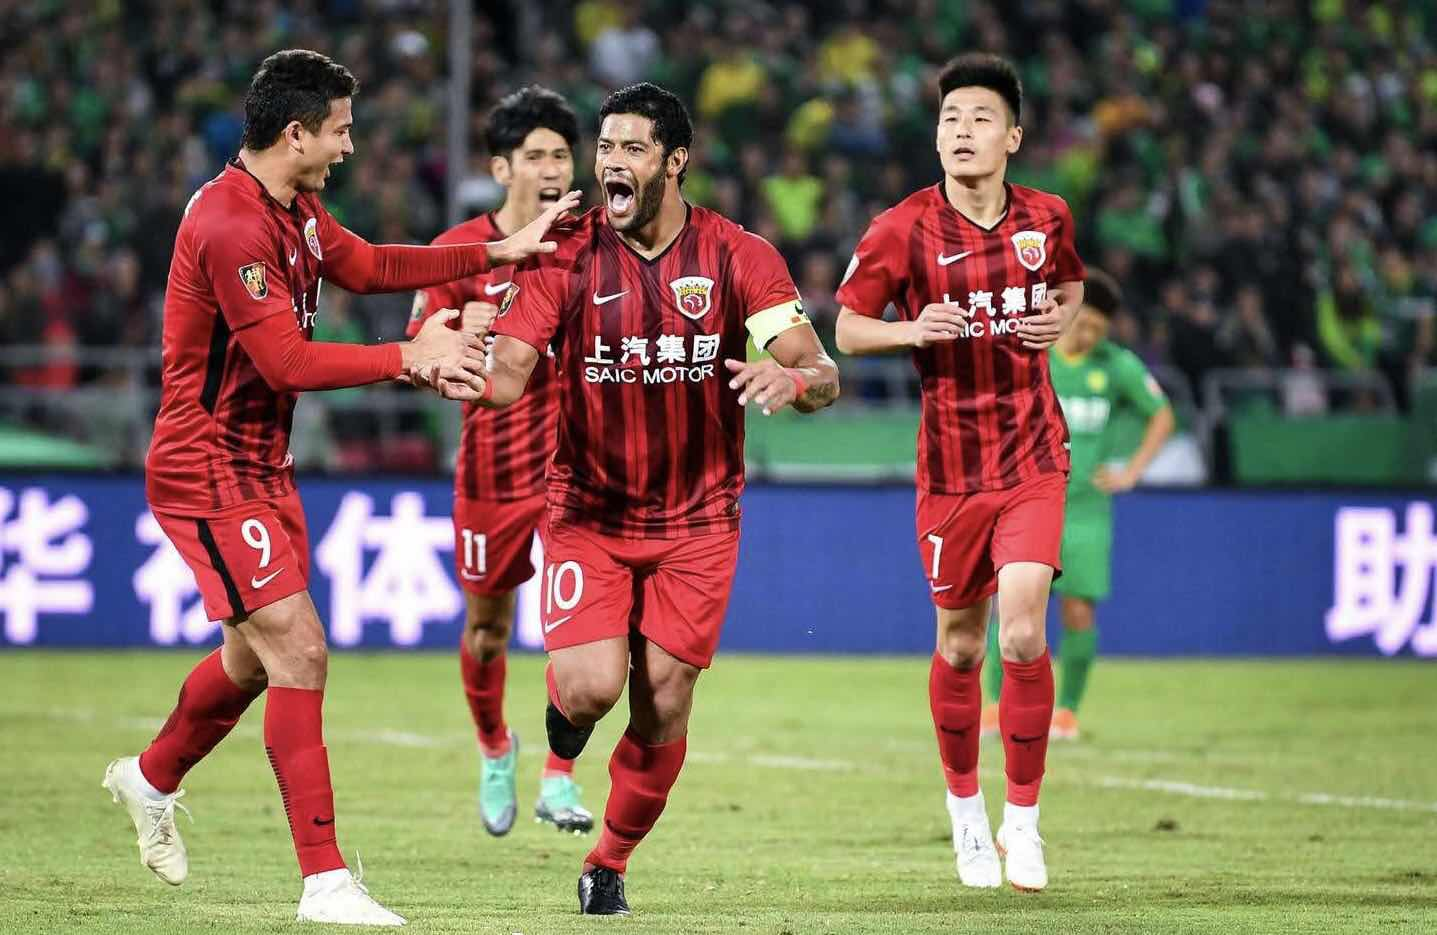 WATCH: Shanghai SIPG Beat Beijing to Stay Clear at Top of CSL